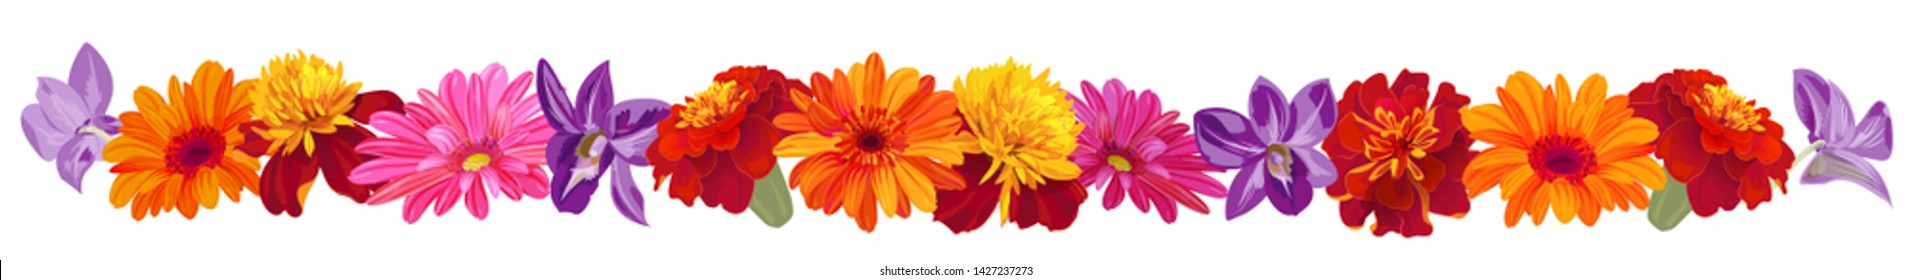 Panoramic view: roses, gerberas, daisies, marigold (tagetes), orchids. Horizontal border, garland flowers for Indian religion festive decoration. Botanical illustration, watercolor style, vector